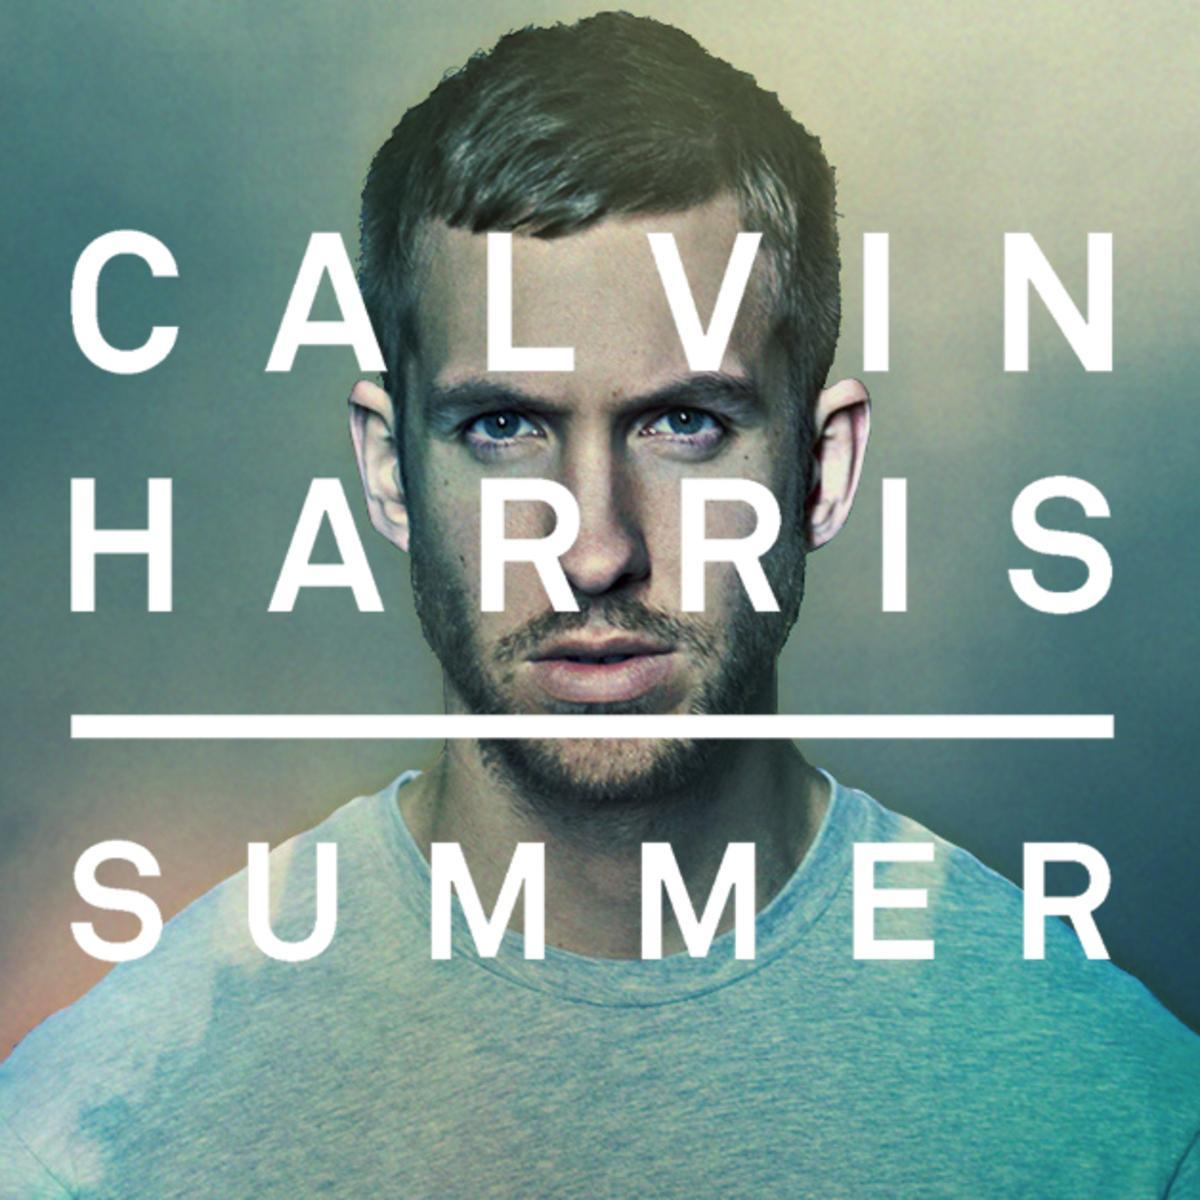 Summer-Calvin Harris